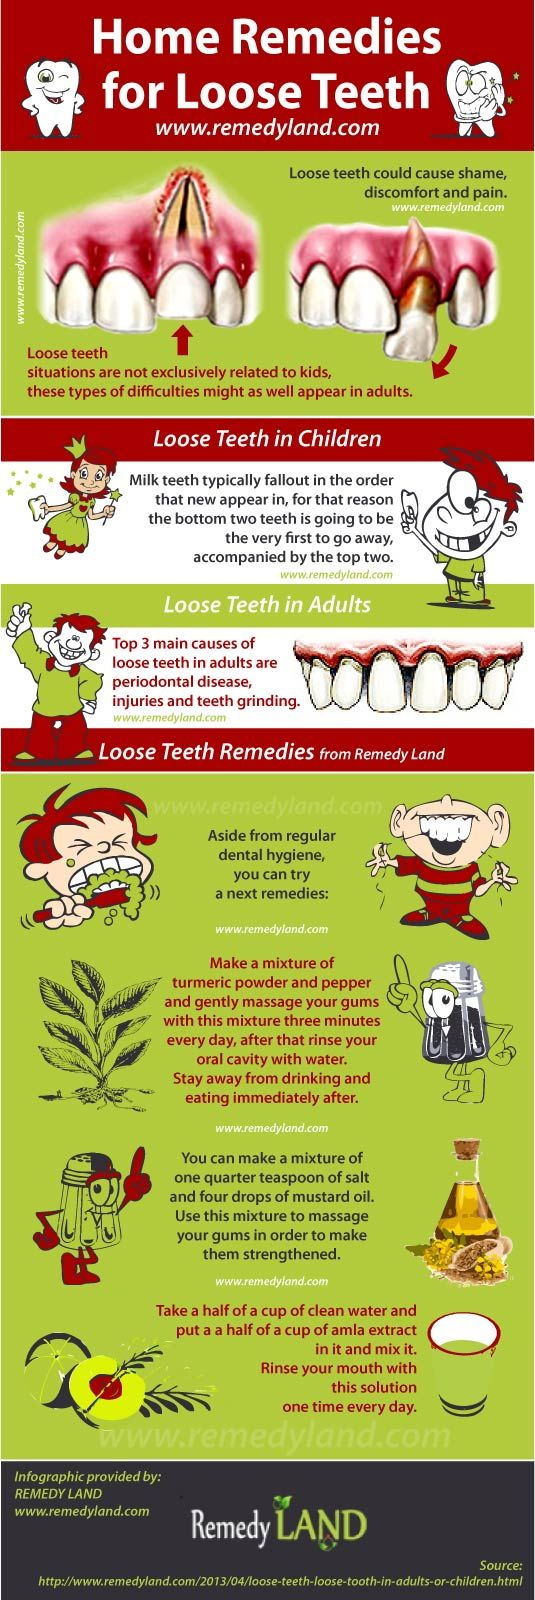 Loose teeth or loose tooth situations are not exclusively related to children, loose teeth or loose tooth difficulties might as well appear in adults.